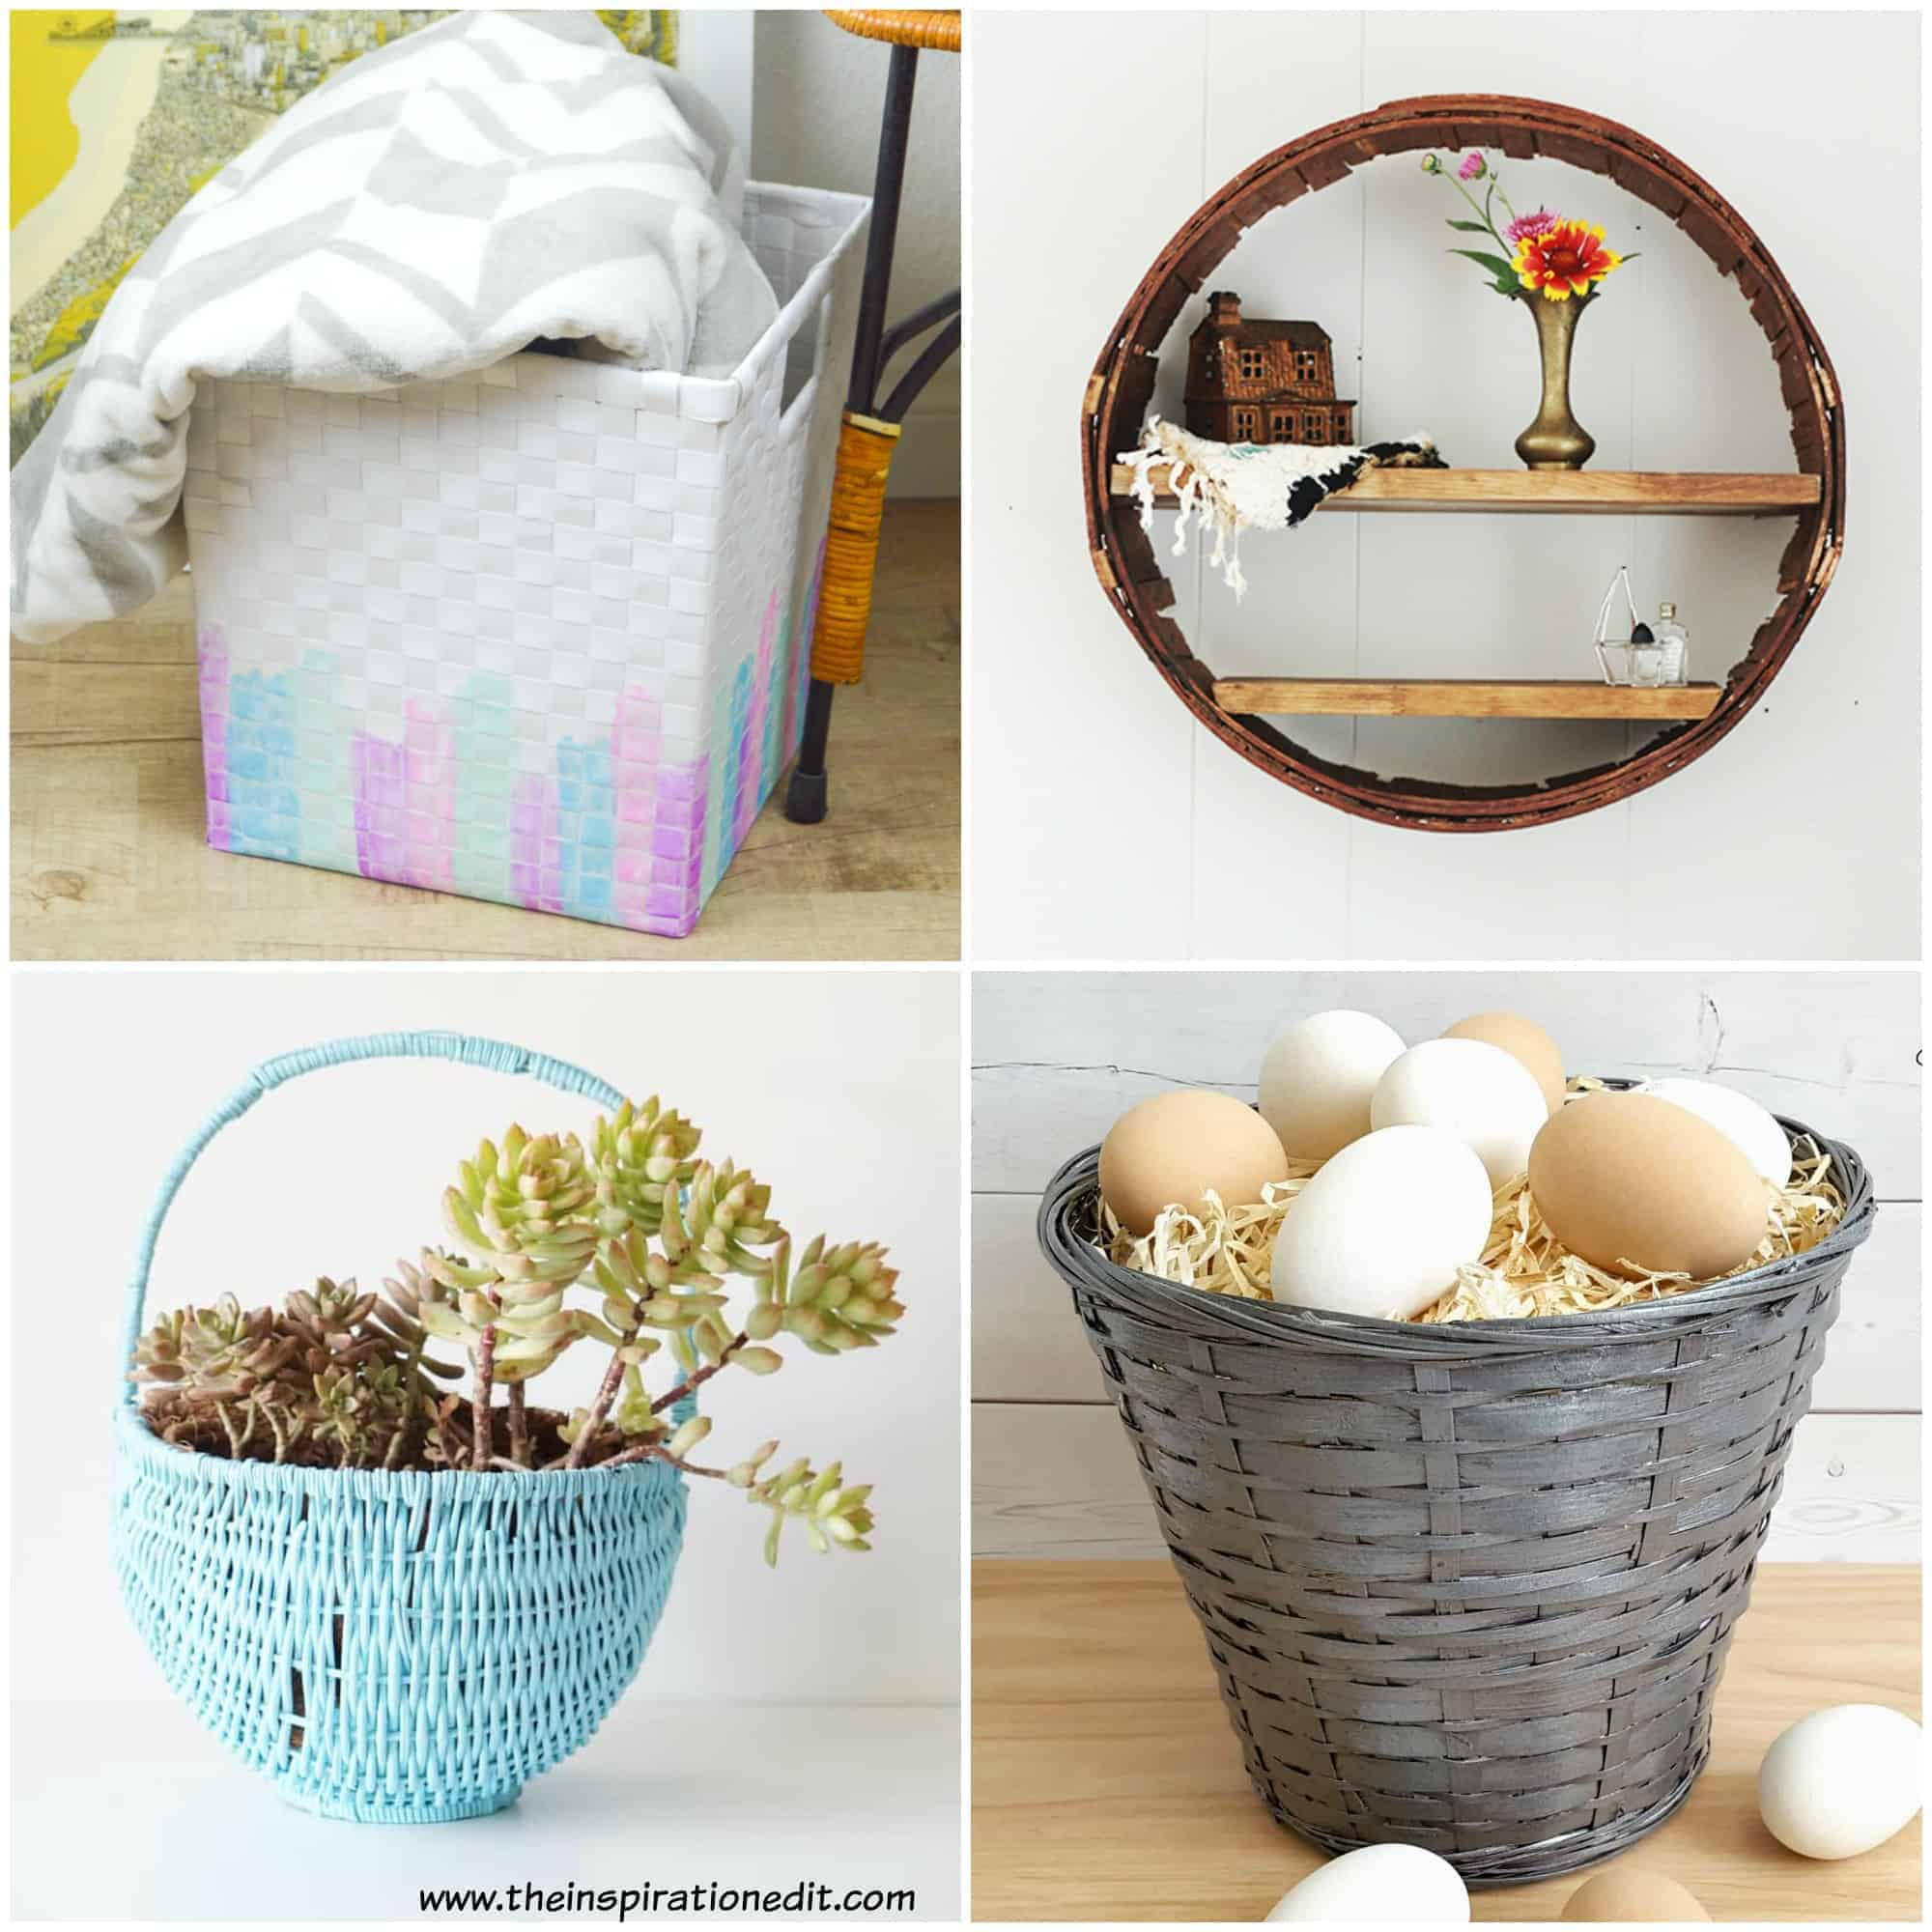 Upcycling Projects Using Baskets